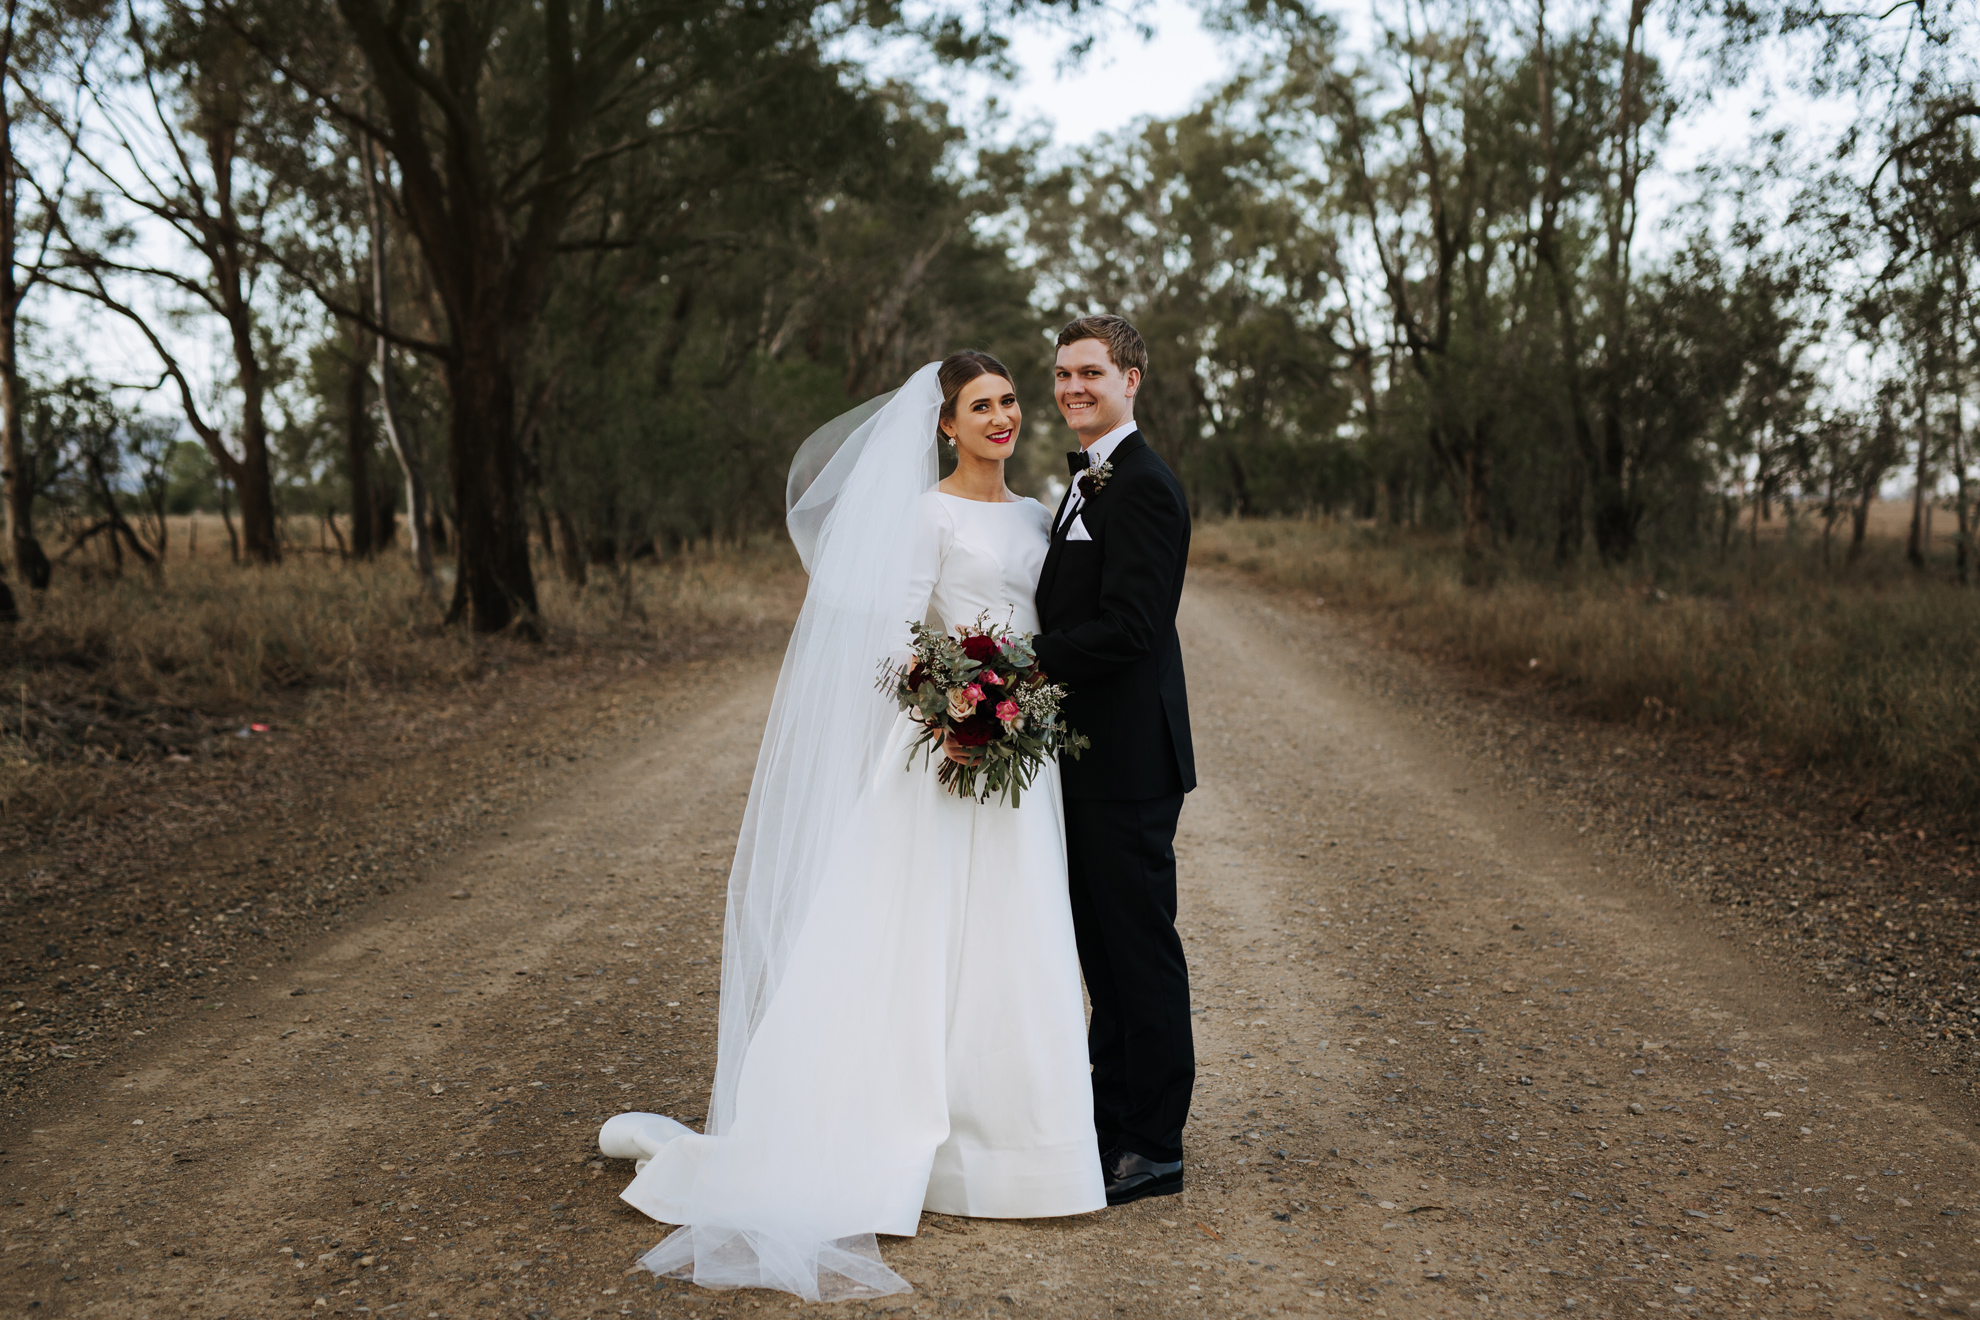 048-Chloe_Joe_Rockhampton_Wedding.jpg